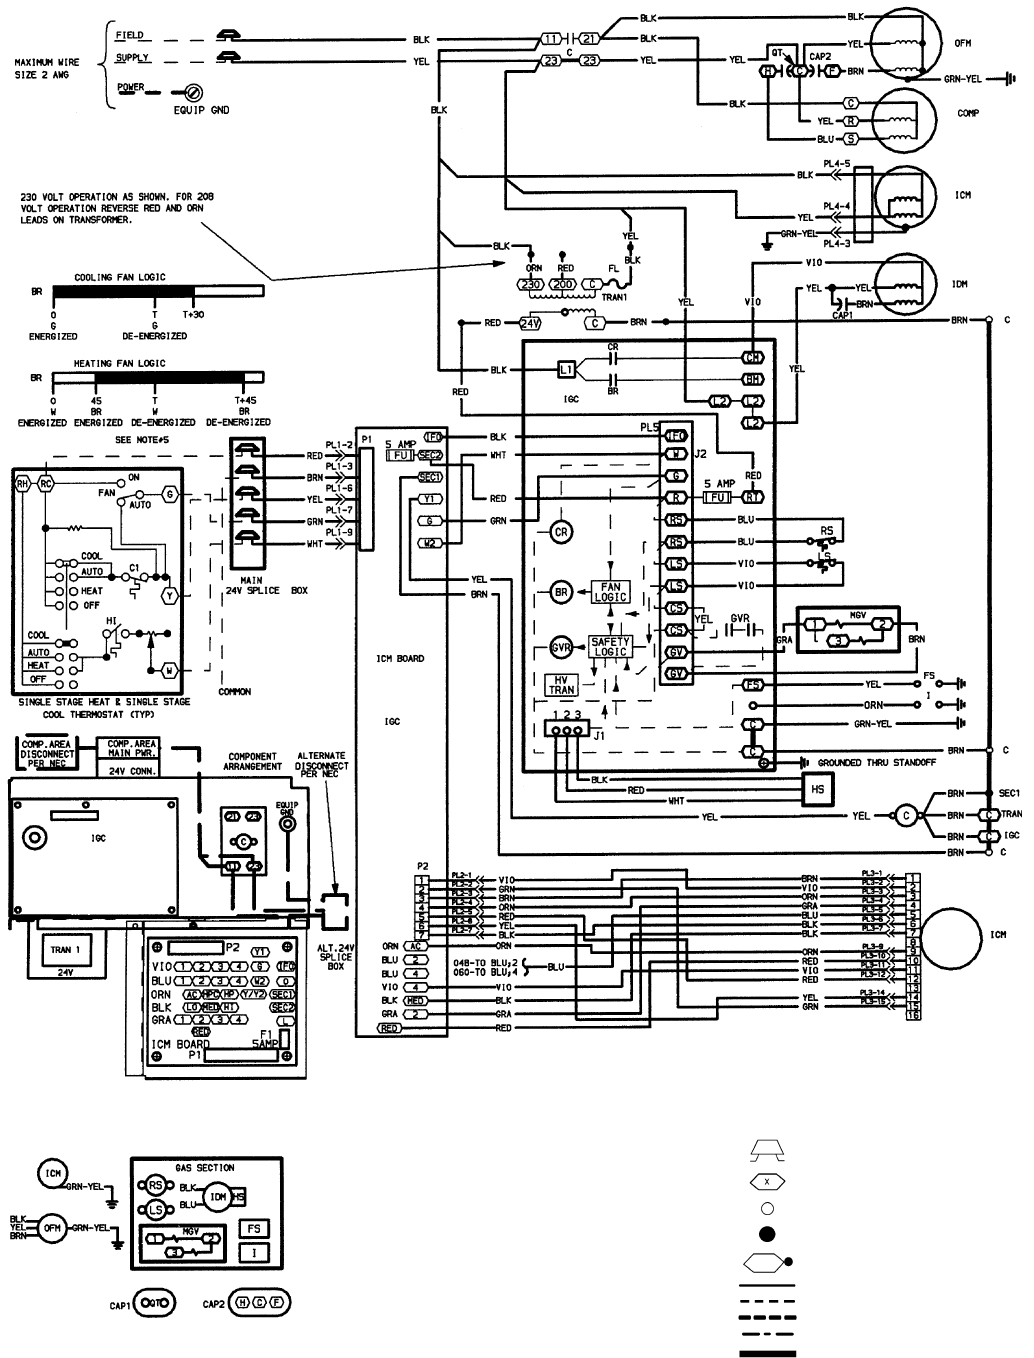 page 31 of bryant air conditioner 588a user guide